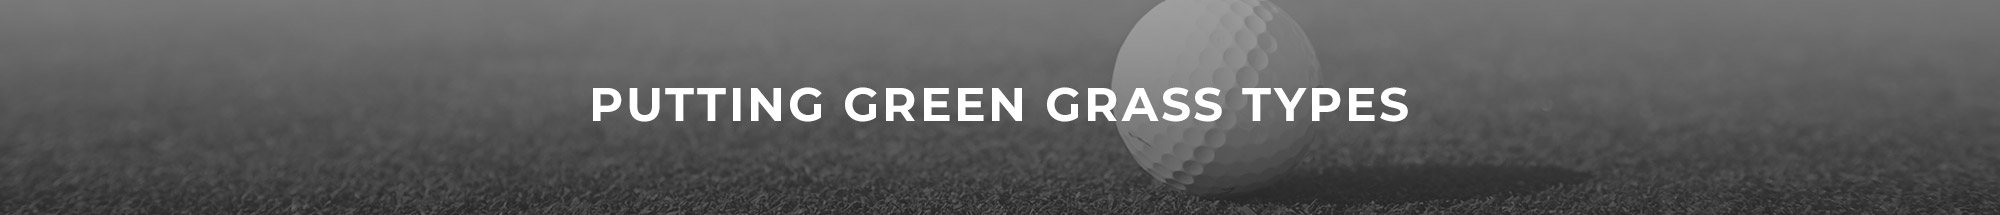 Header Image of Putting Green Grass Types